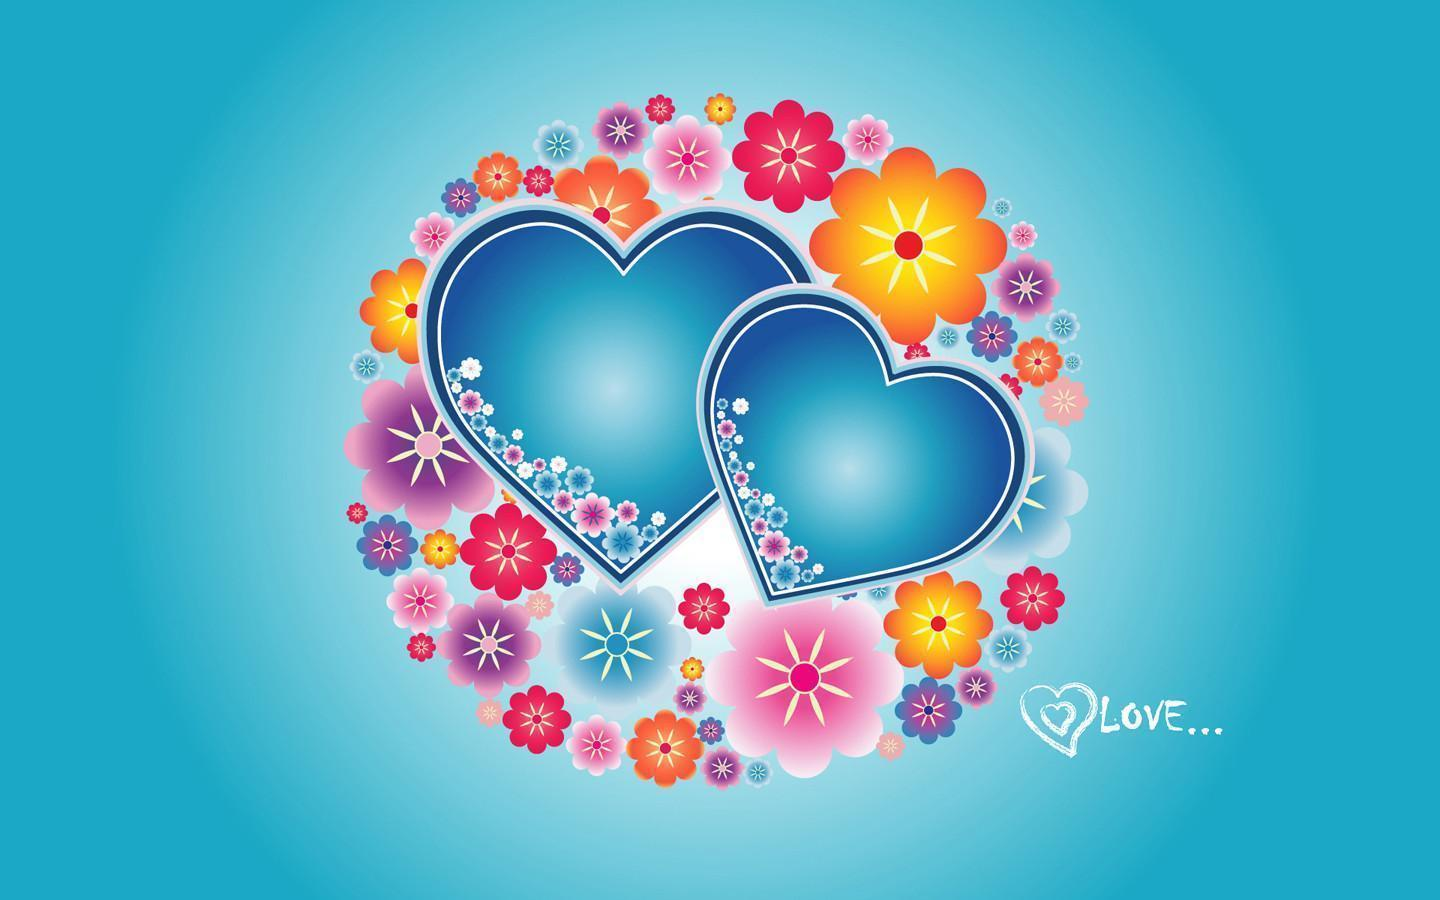 Love Wallpaper Hd Gallery : Love Heart Wallpapers HD - Wallpaper cave